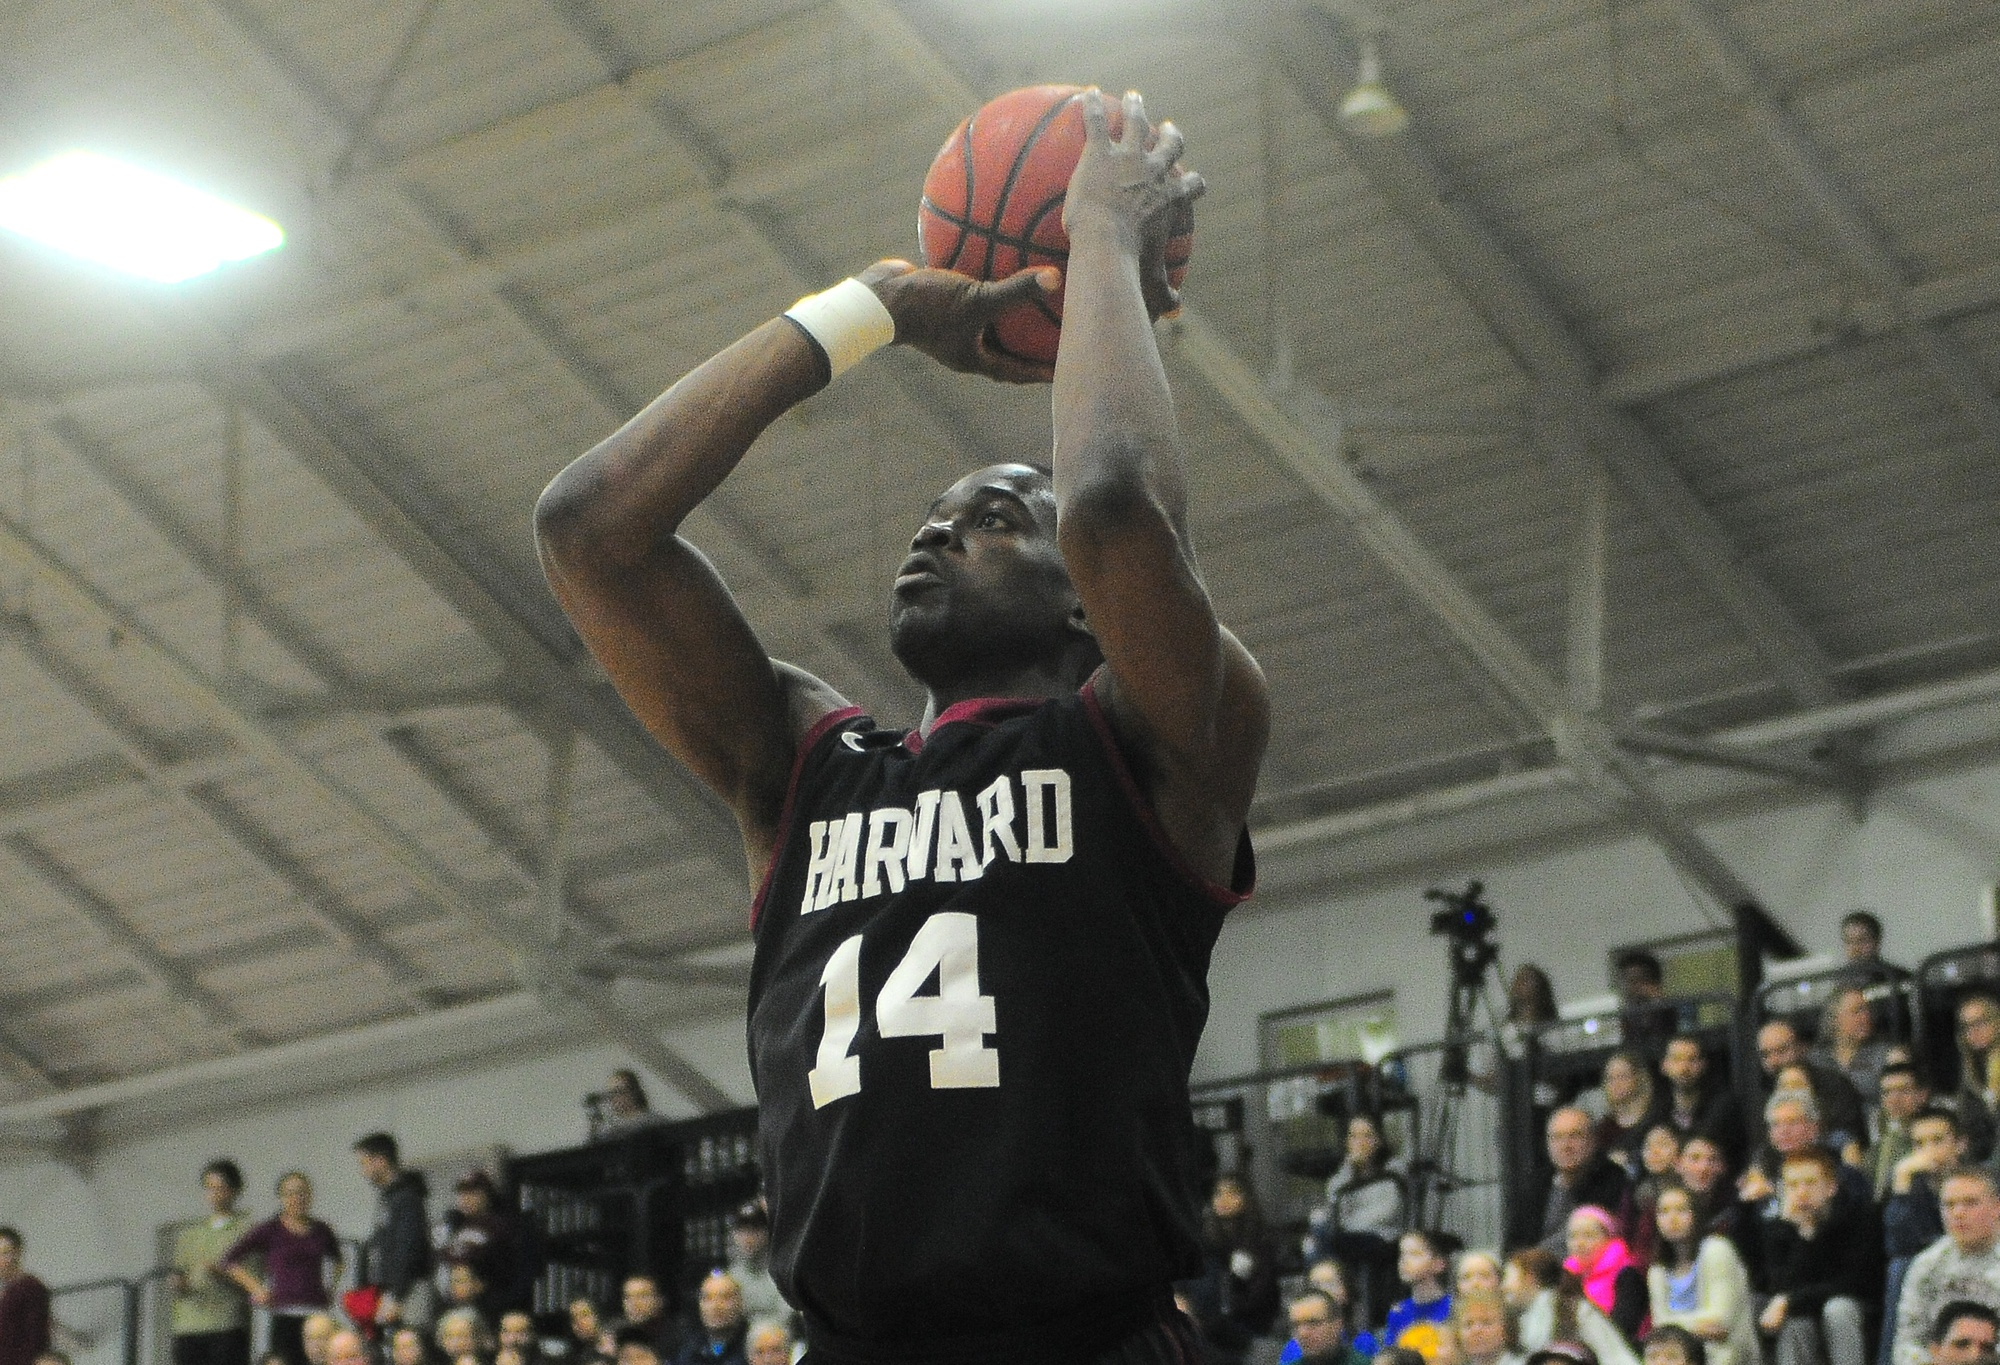 The Crimson finished out the regular season with a 72-62 win over Brown. With Yale's 59-58 loss to Dartmouth an hour later, Harvard and the Bulldogs share the Ivy title and will face off in a one-game playoff to determine which team will represent the Ivy League at the NCAA Tournament.